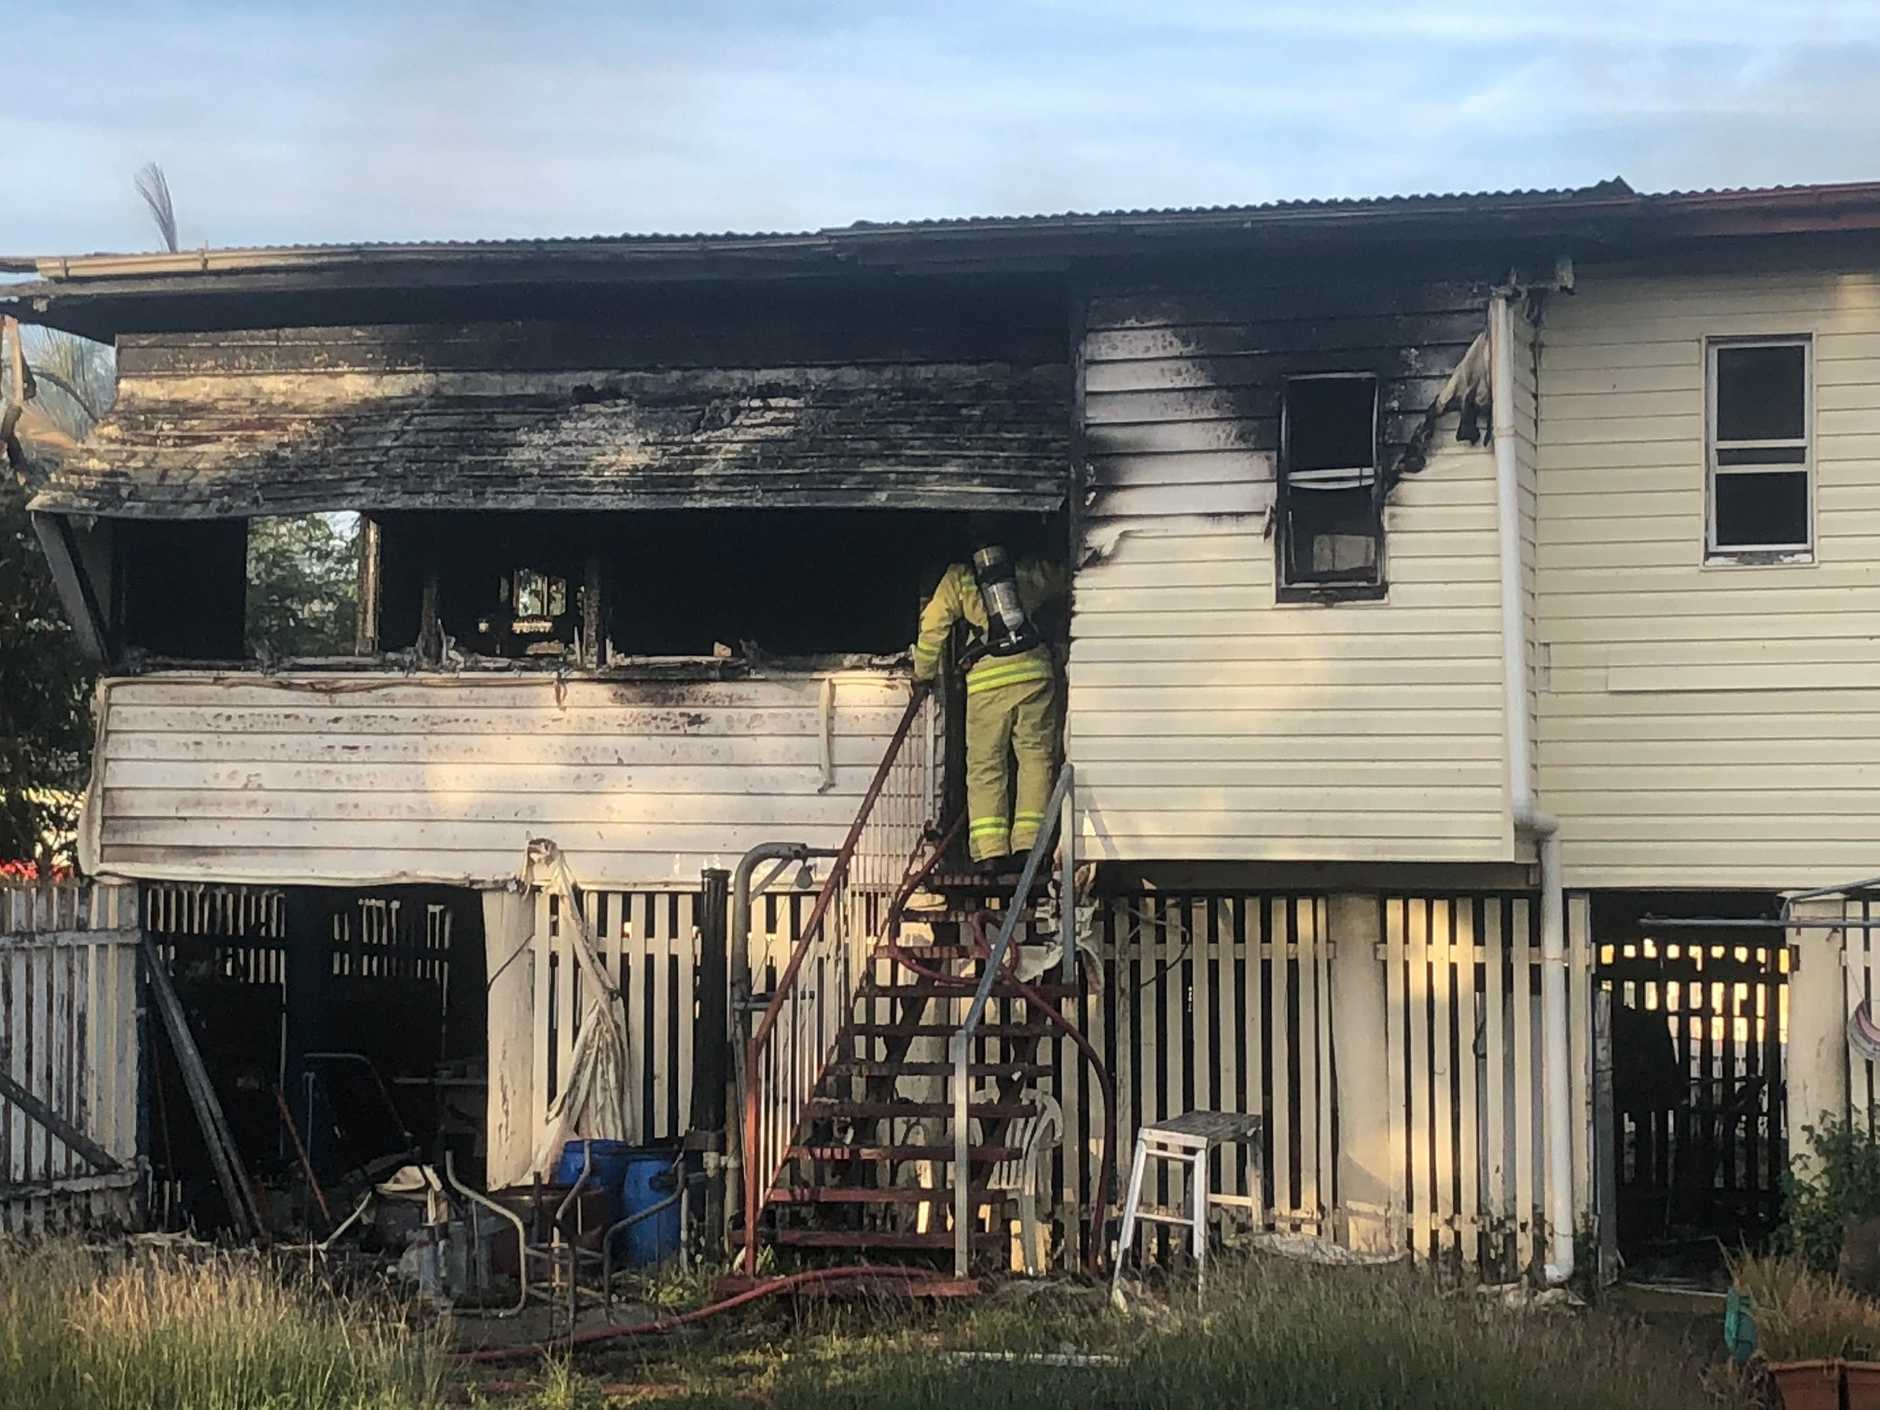 HOME GUTTED: A home in Naughton St, Wandal, was gutted by fire yesterday afternoon. Investigations are expected to begin today.